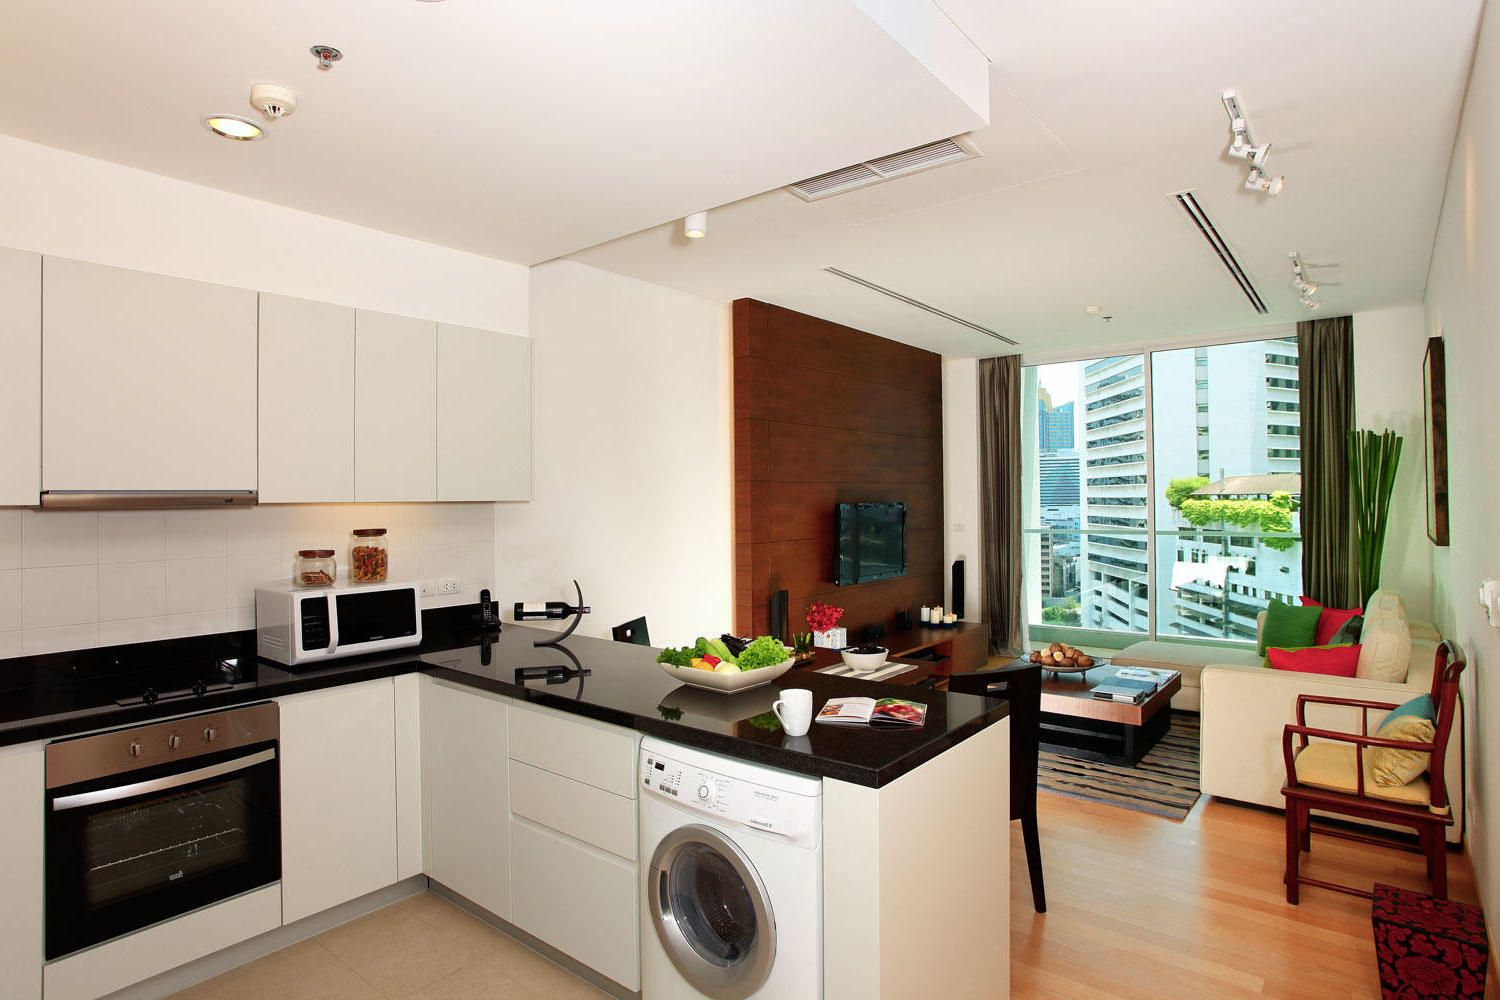 Small Space Solutions Living Room Small Room Decorating Ideas Living Room And Kitchen Design Kitchen Design Small Simple Living Room Designs